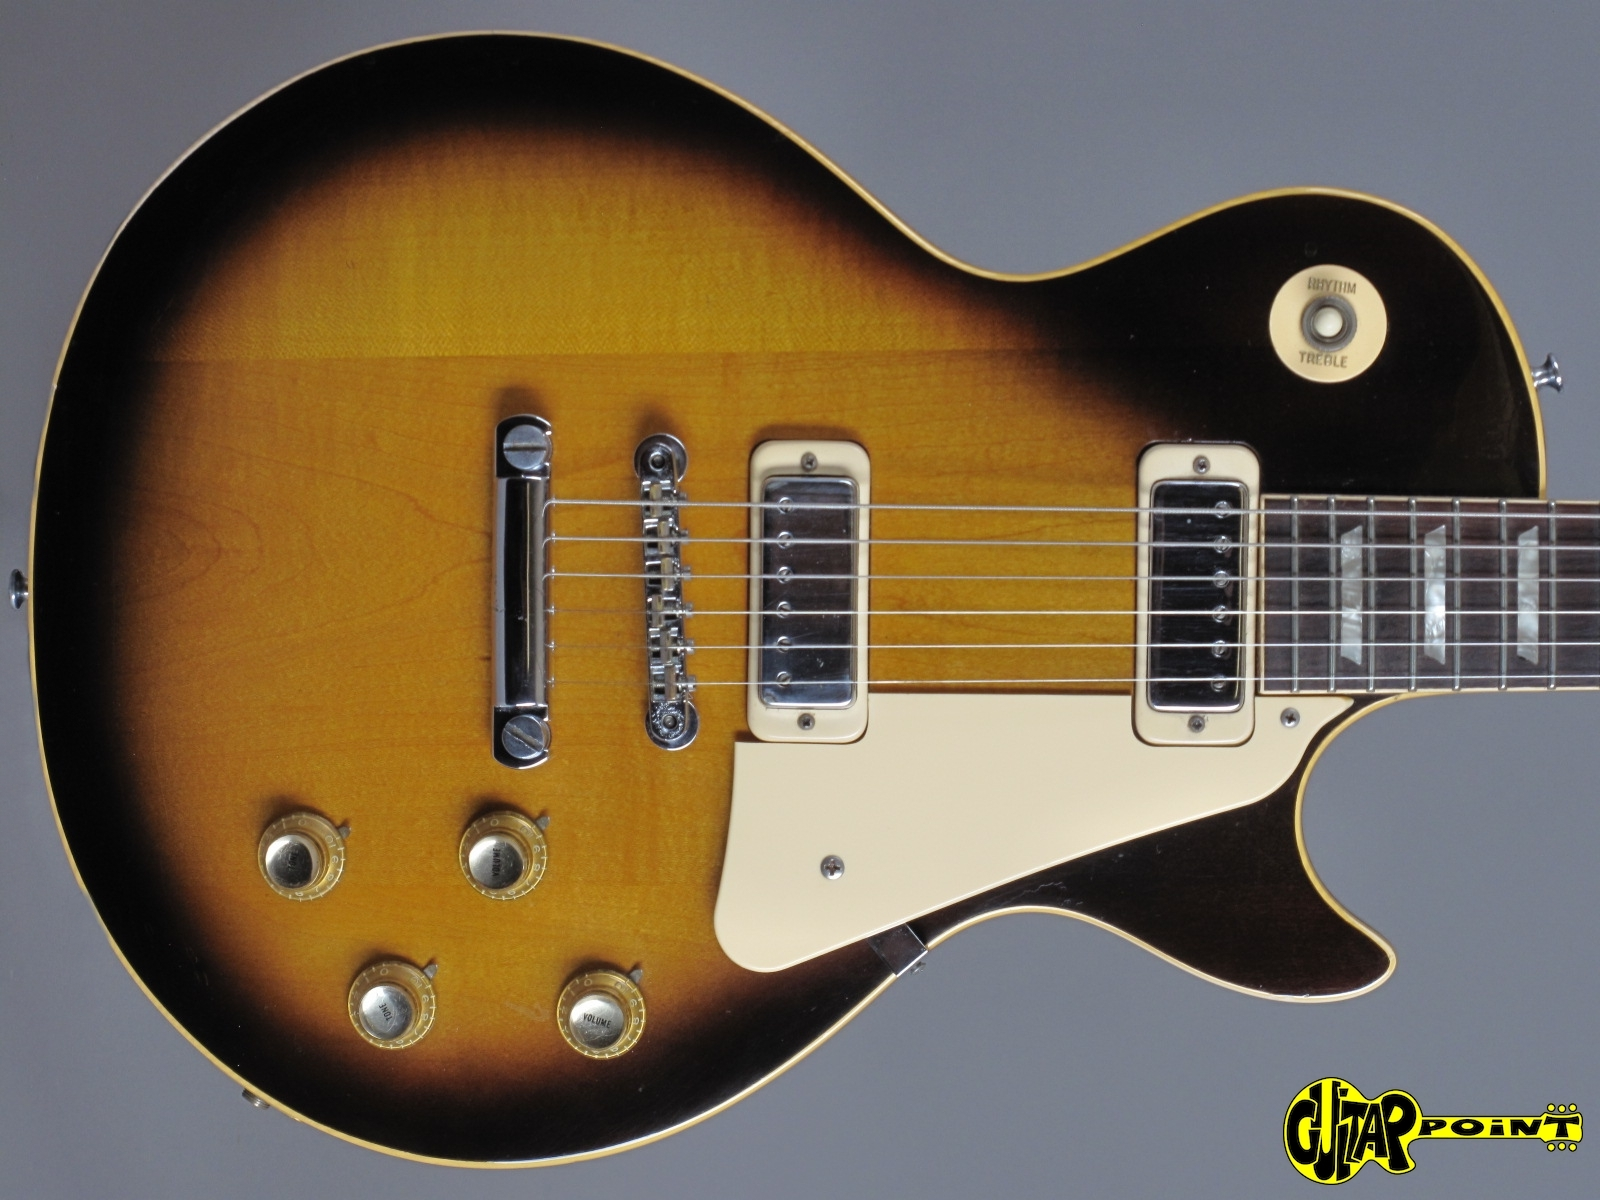 https://guitarpoint.de/app/uploads/products/1974-gibson-les-paul-deluxe-tobacco-sunburst/Gibson73LPDL_TSB171621_2q.jpg